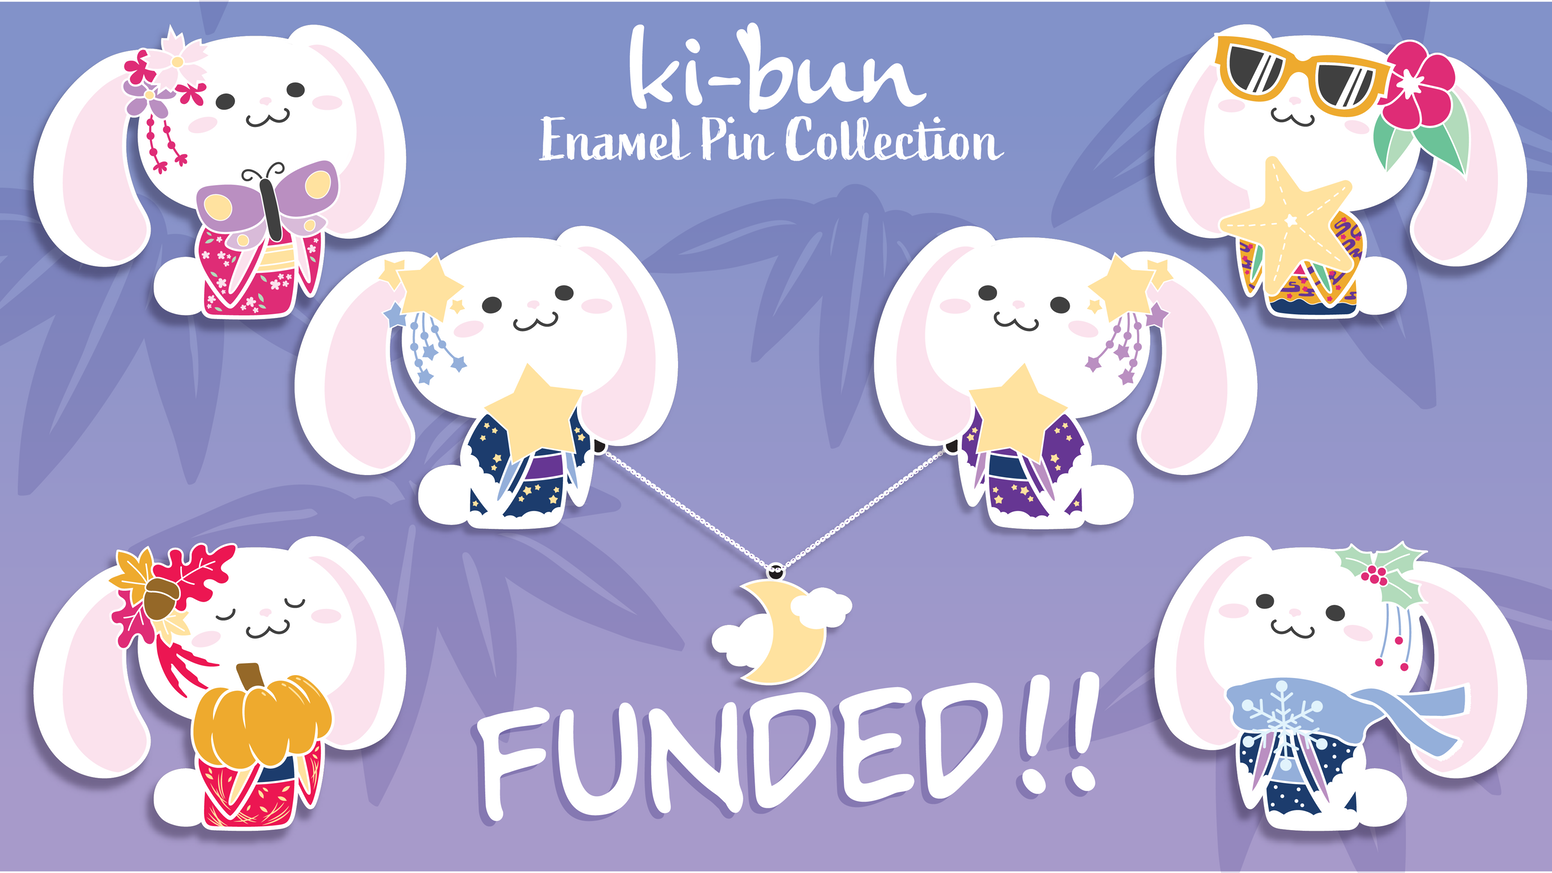 An enamel pin collaborative project between Merumori and her Mom!